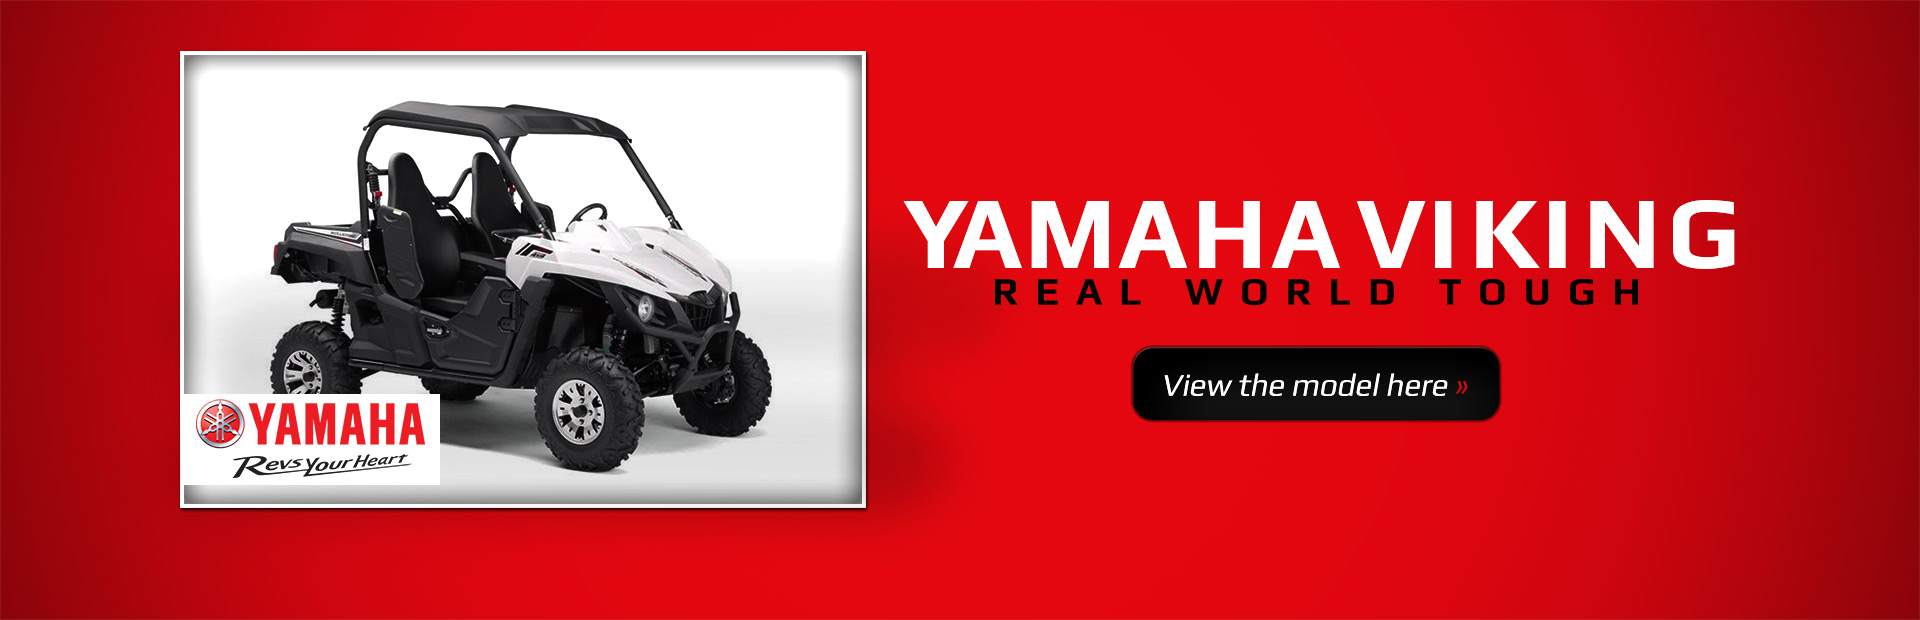 Click here to view the Yamaha Viking.